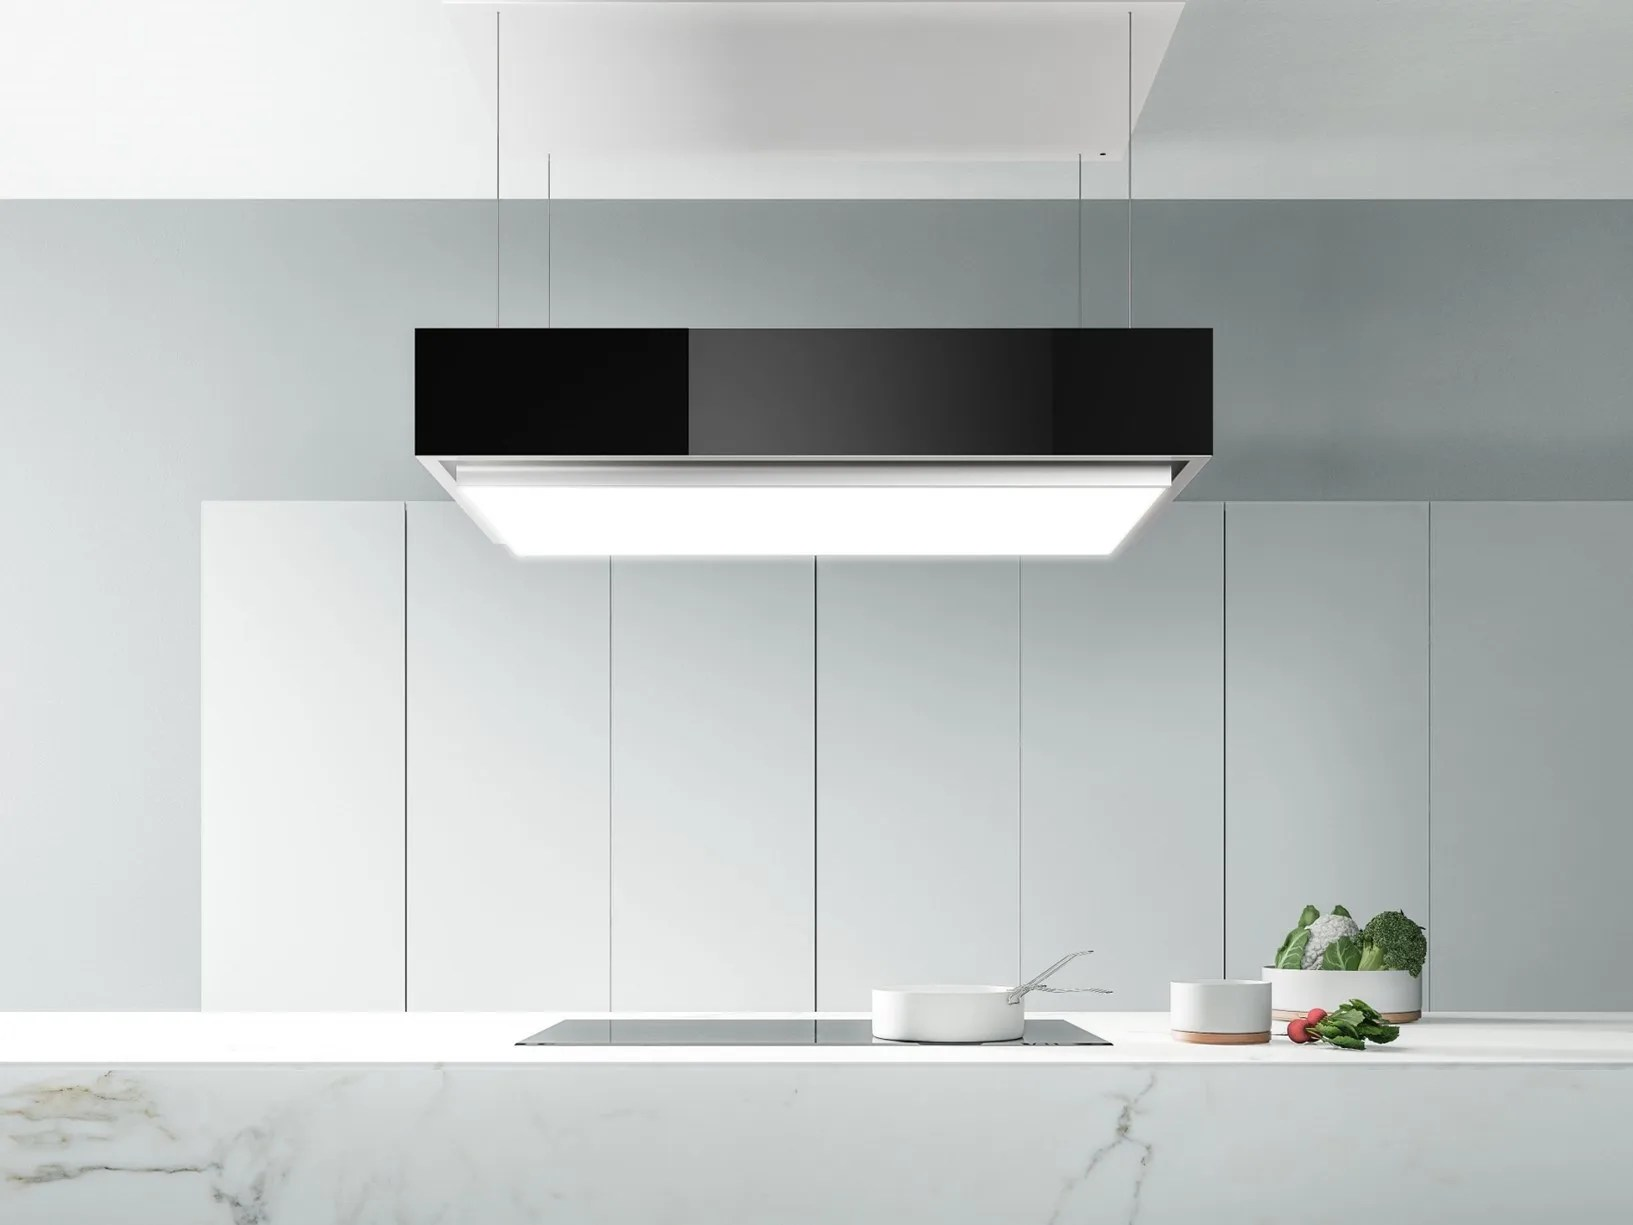 Cappe Cucina Falmec Levante Design In Movimento